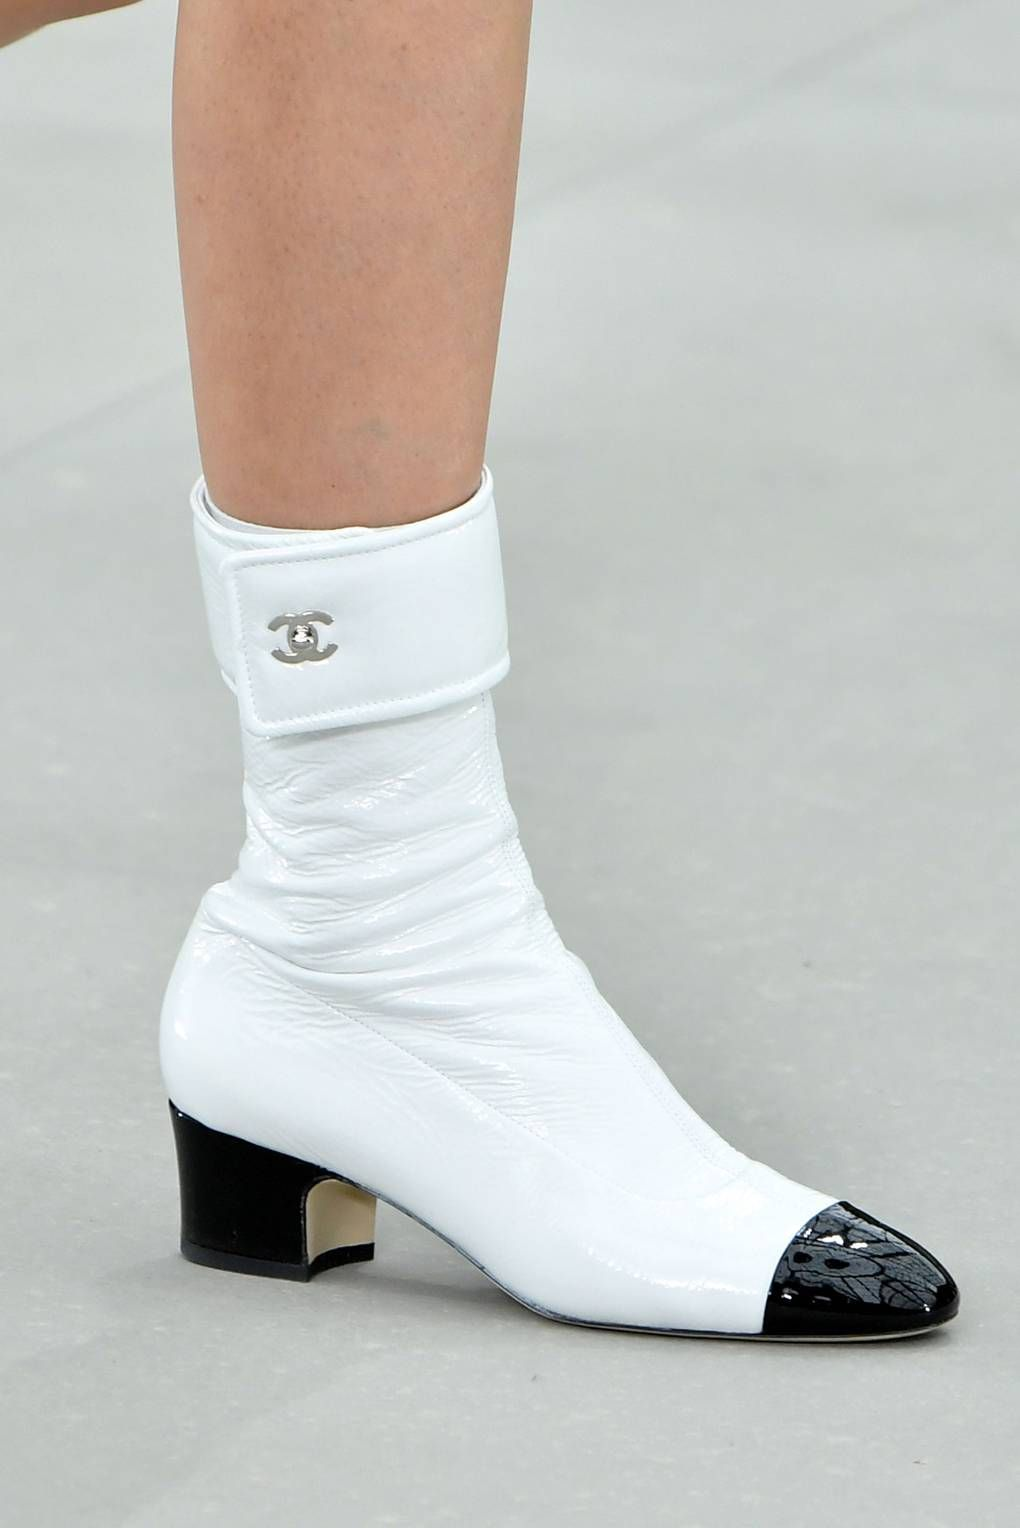 7 Things To Know About Chanel Cruise 2020 is part of Chanel shoes - In Virginie Viard's first solo show since Karl Lagerfeld's passing, the codes of the house looked to be secure, but there was a new sleekness, too here are seven things to know about Chanel Cruise 2020